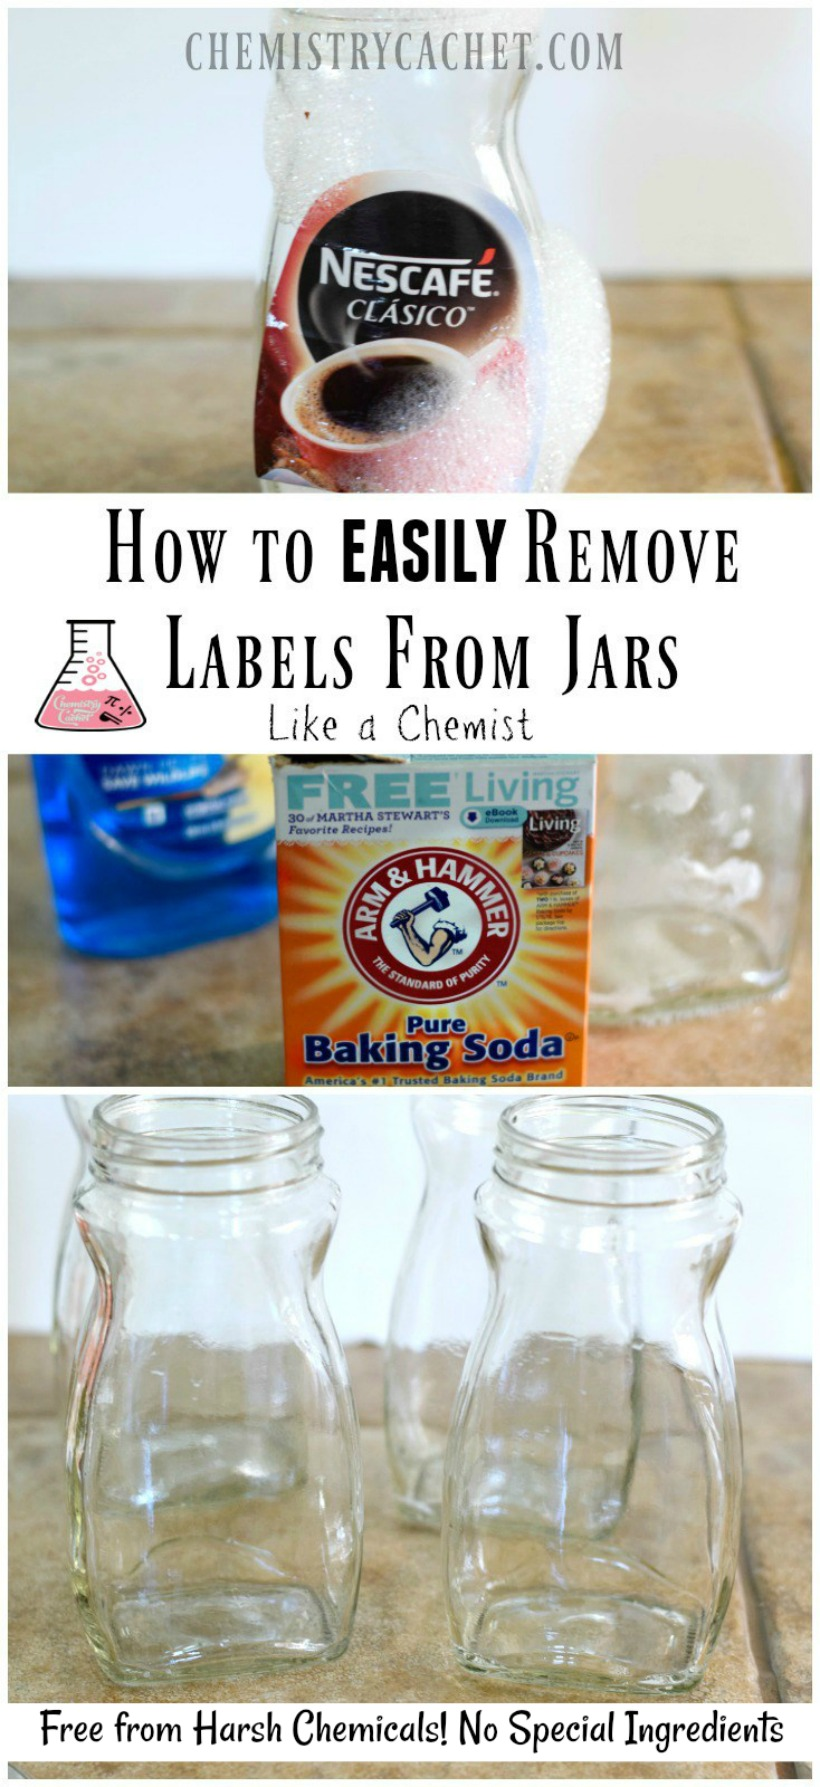 How to Remove Labels from Jars the Easy Way! No special ingredients needed and it only takes two steps on chemistrycachet.com